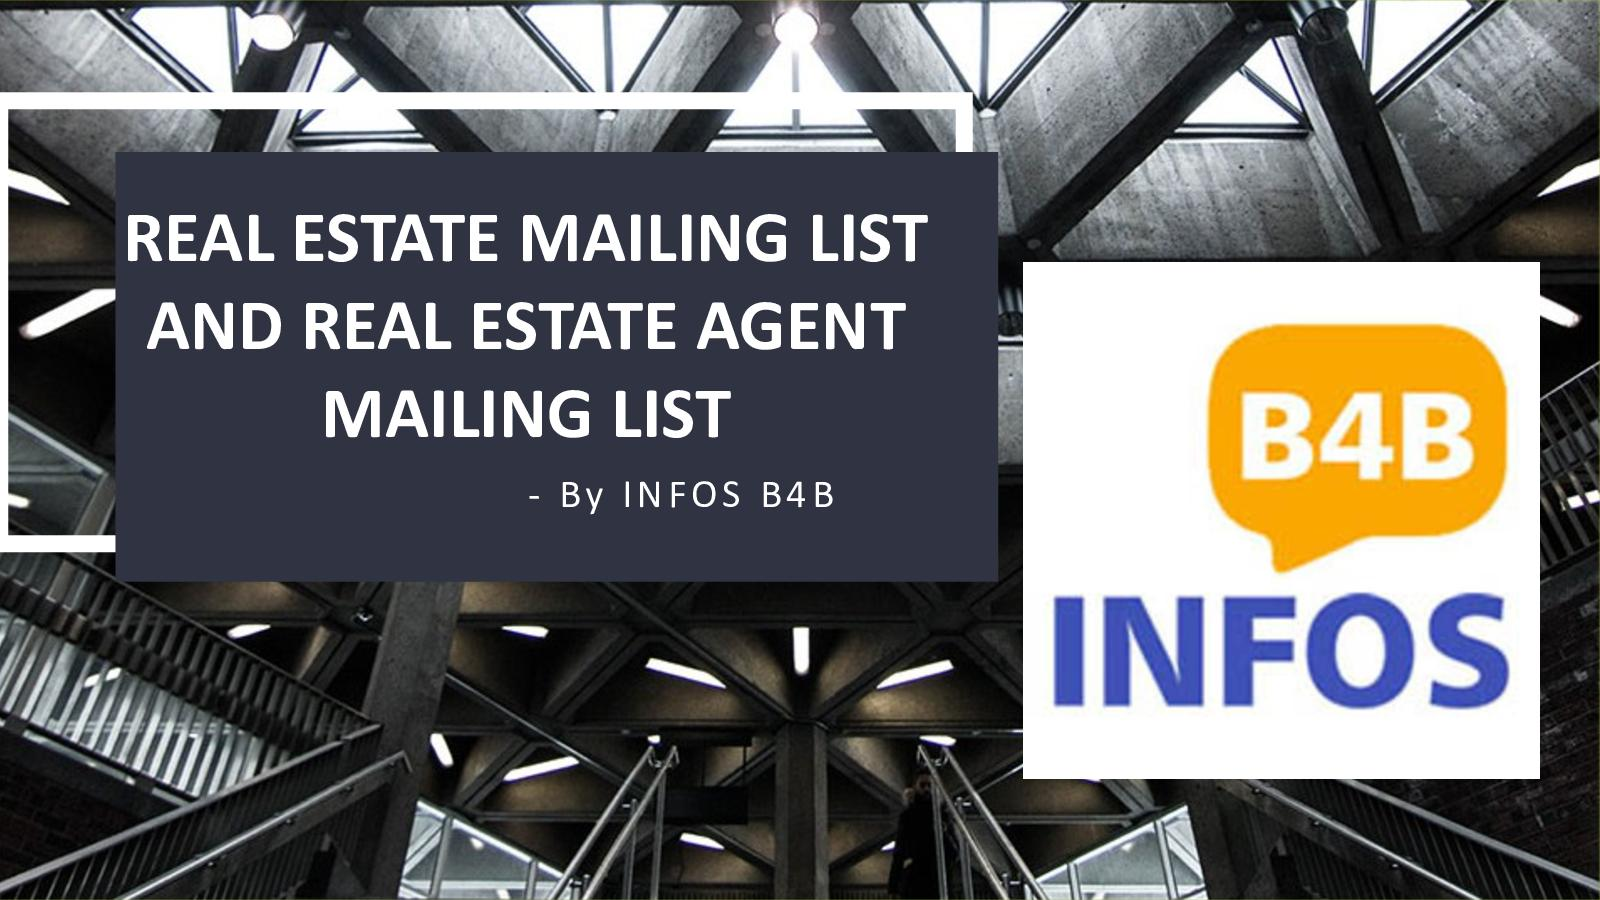 Calaméo - Real Estate Mailing List| Real Estate Agent Email List